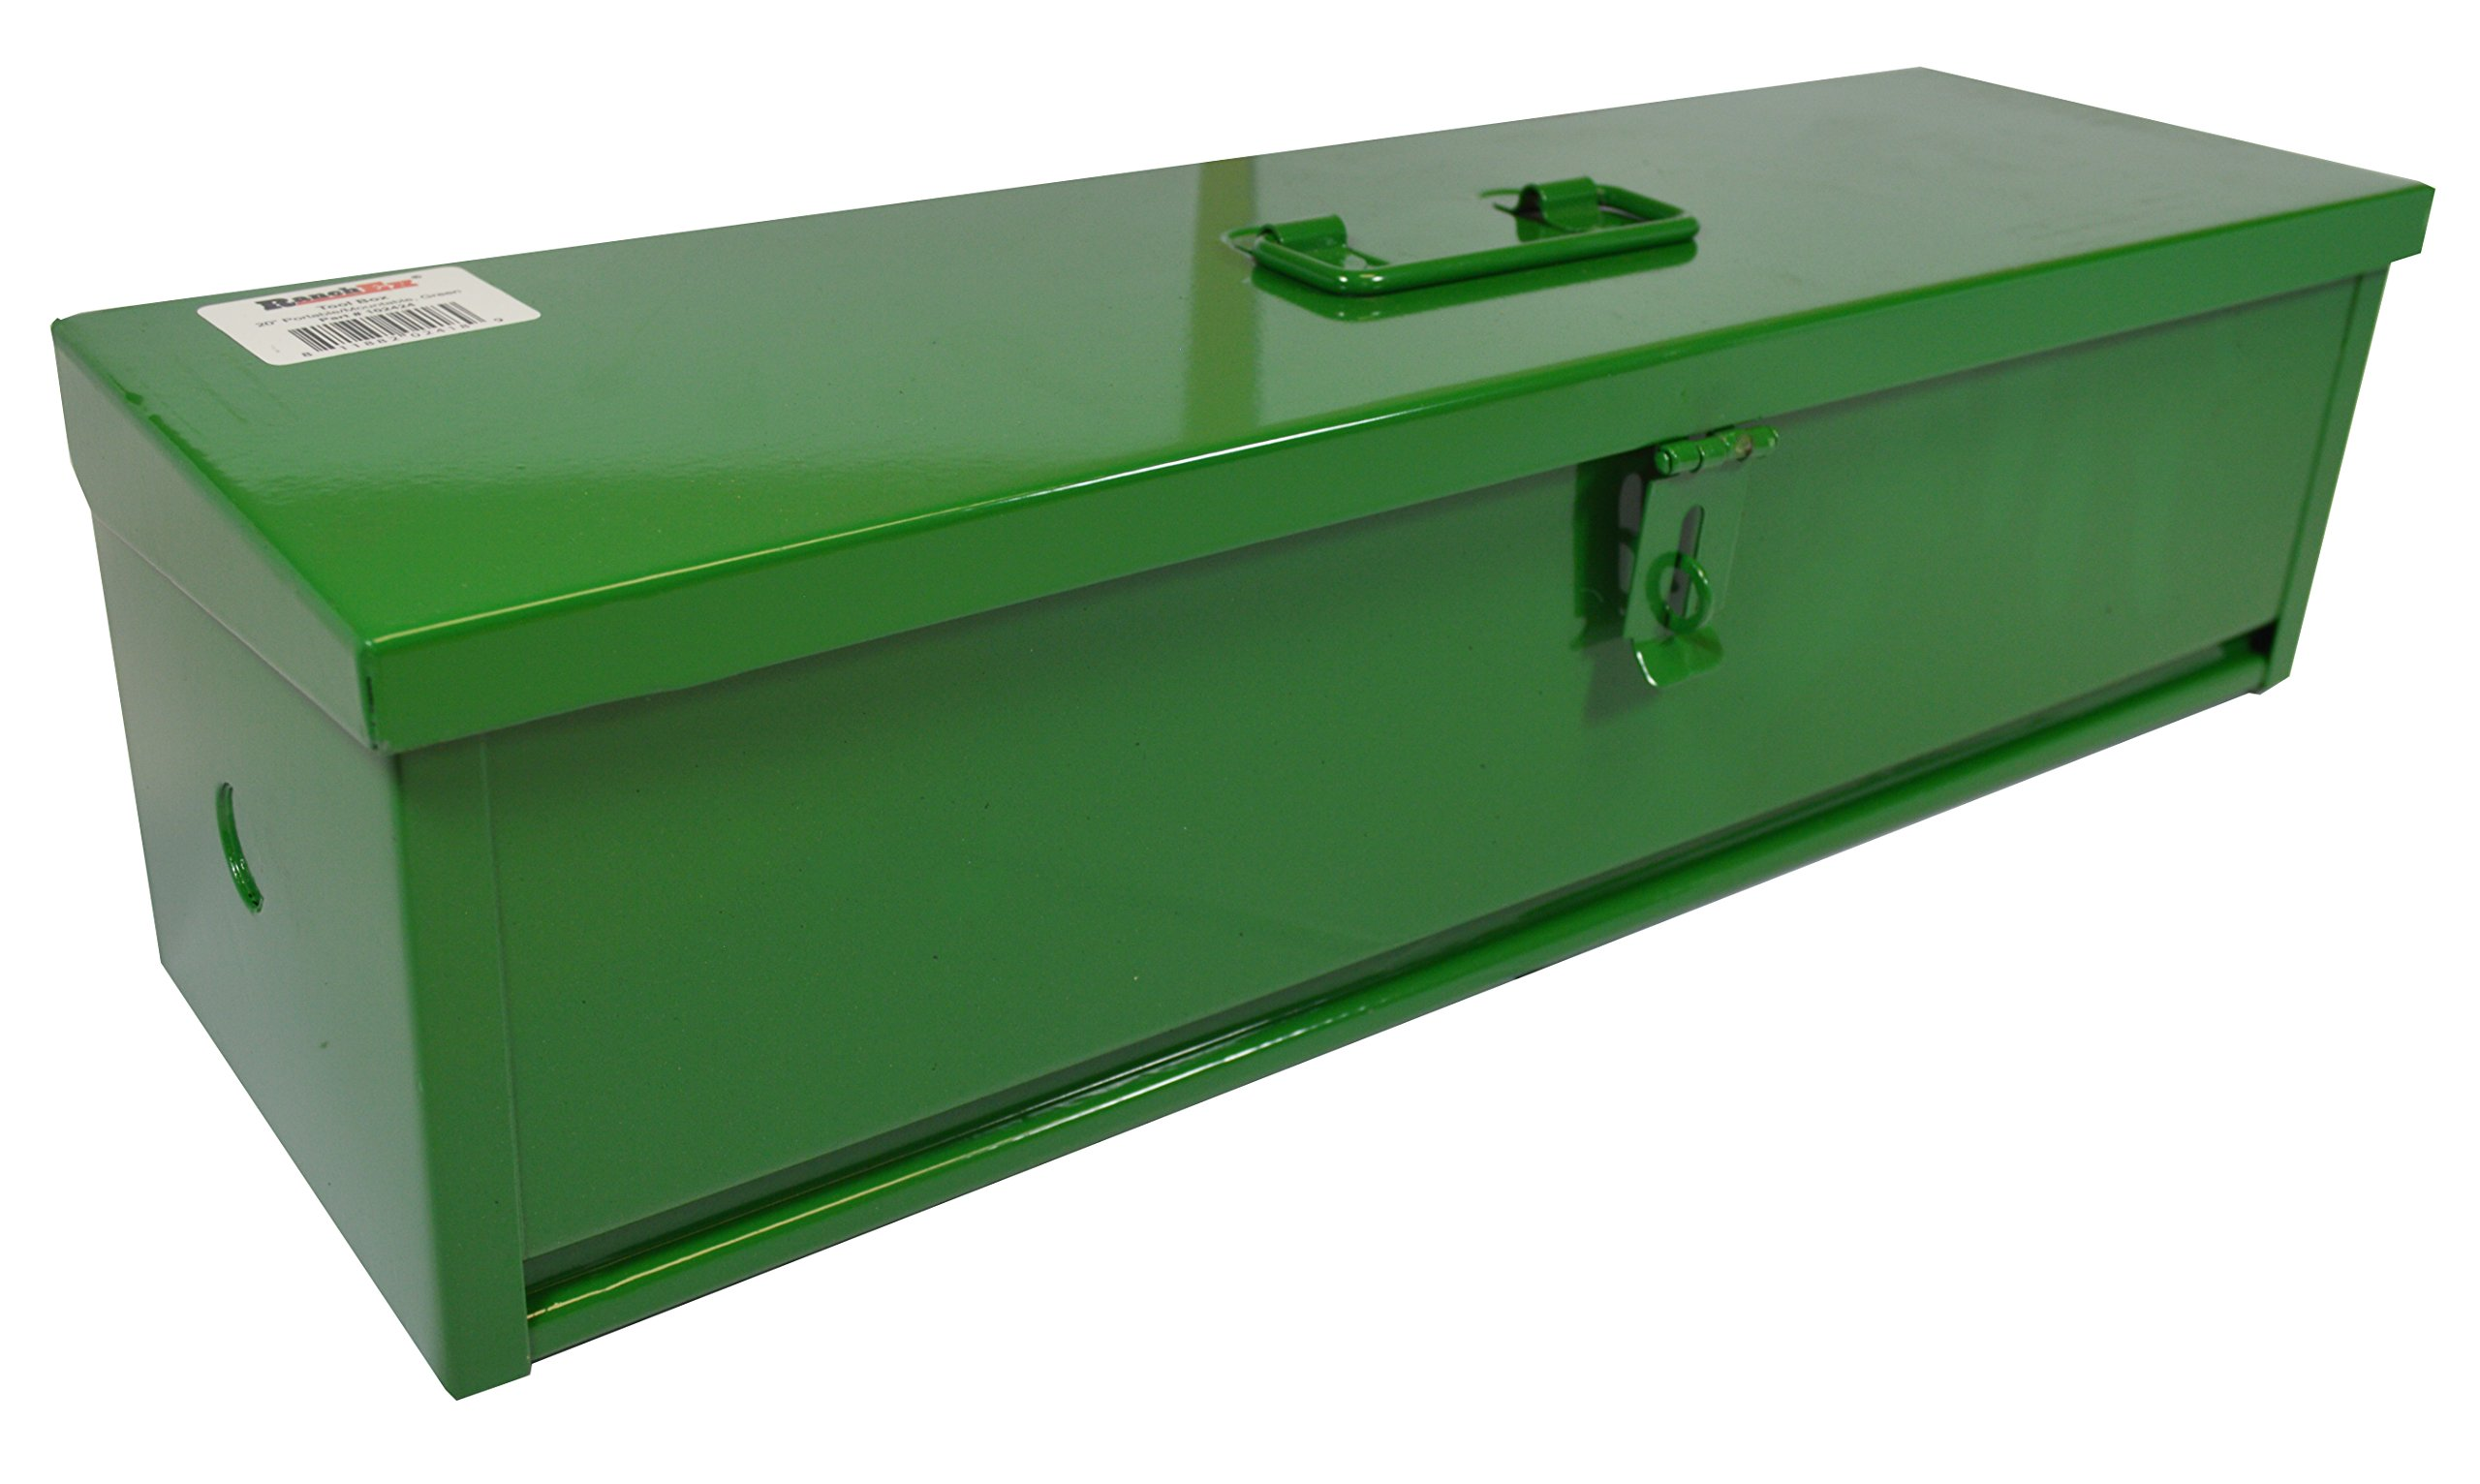 RanchEx 102424 Tool Box - Portable For Trucks/Tractors, Mounting Hardware Included - 20'' - Green